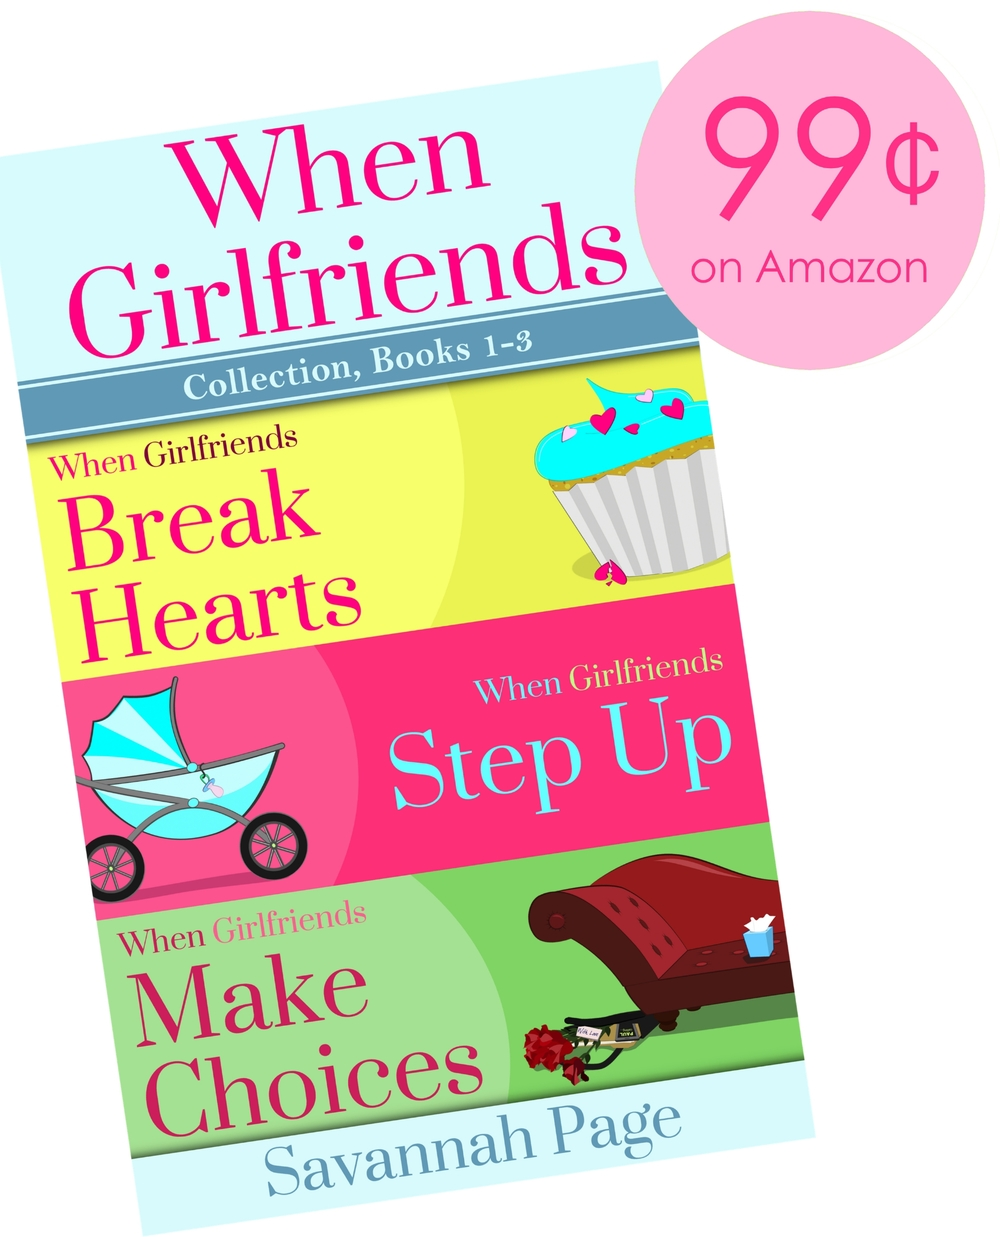 PROMO IMAGE When Girlfriends Collection Books 1-3